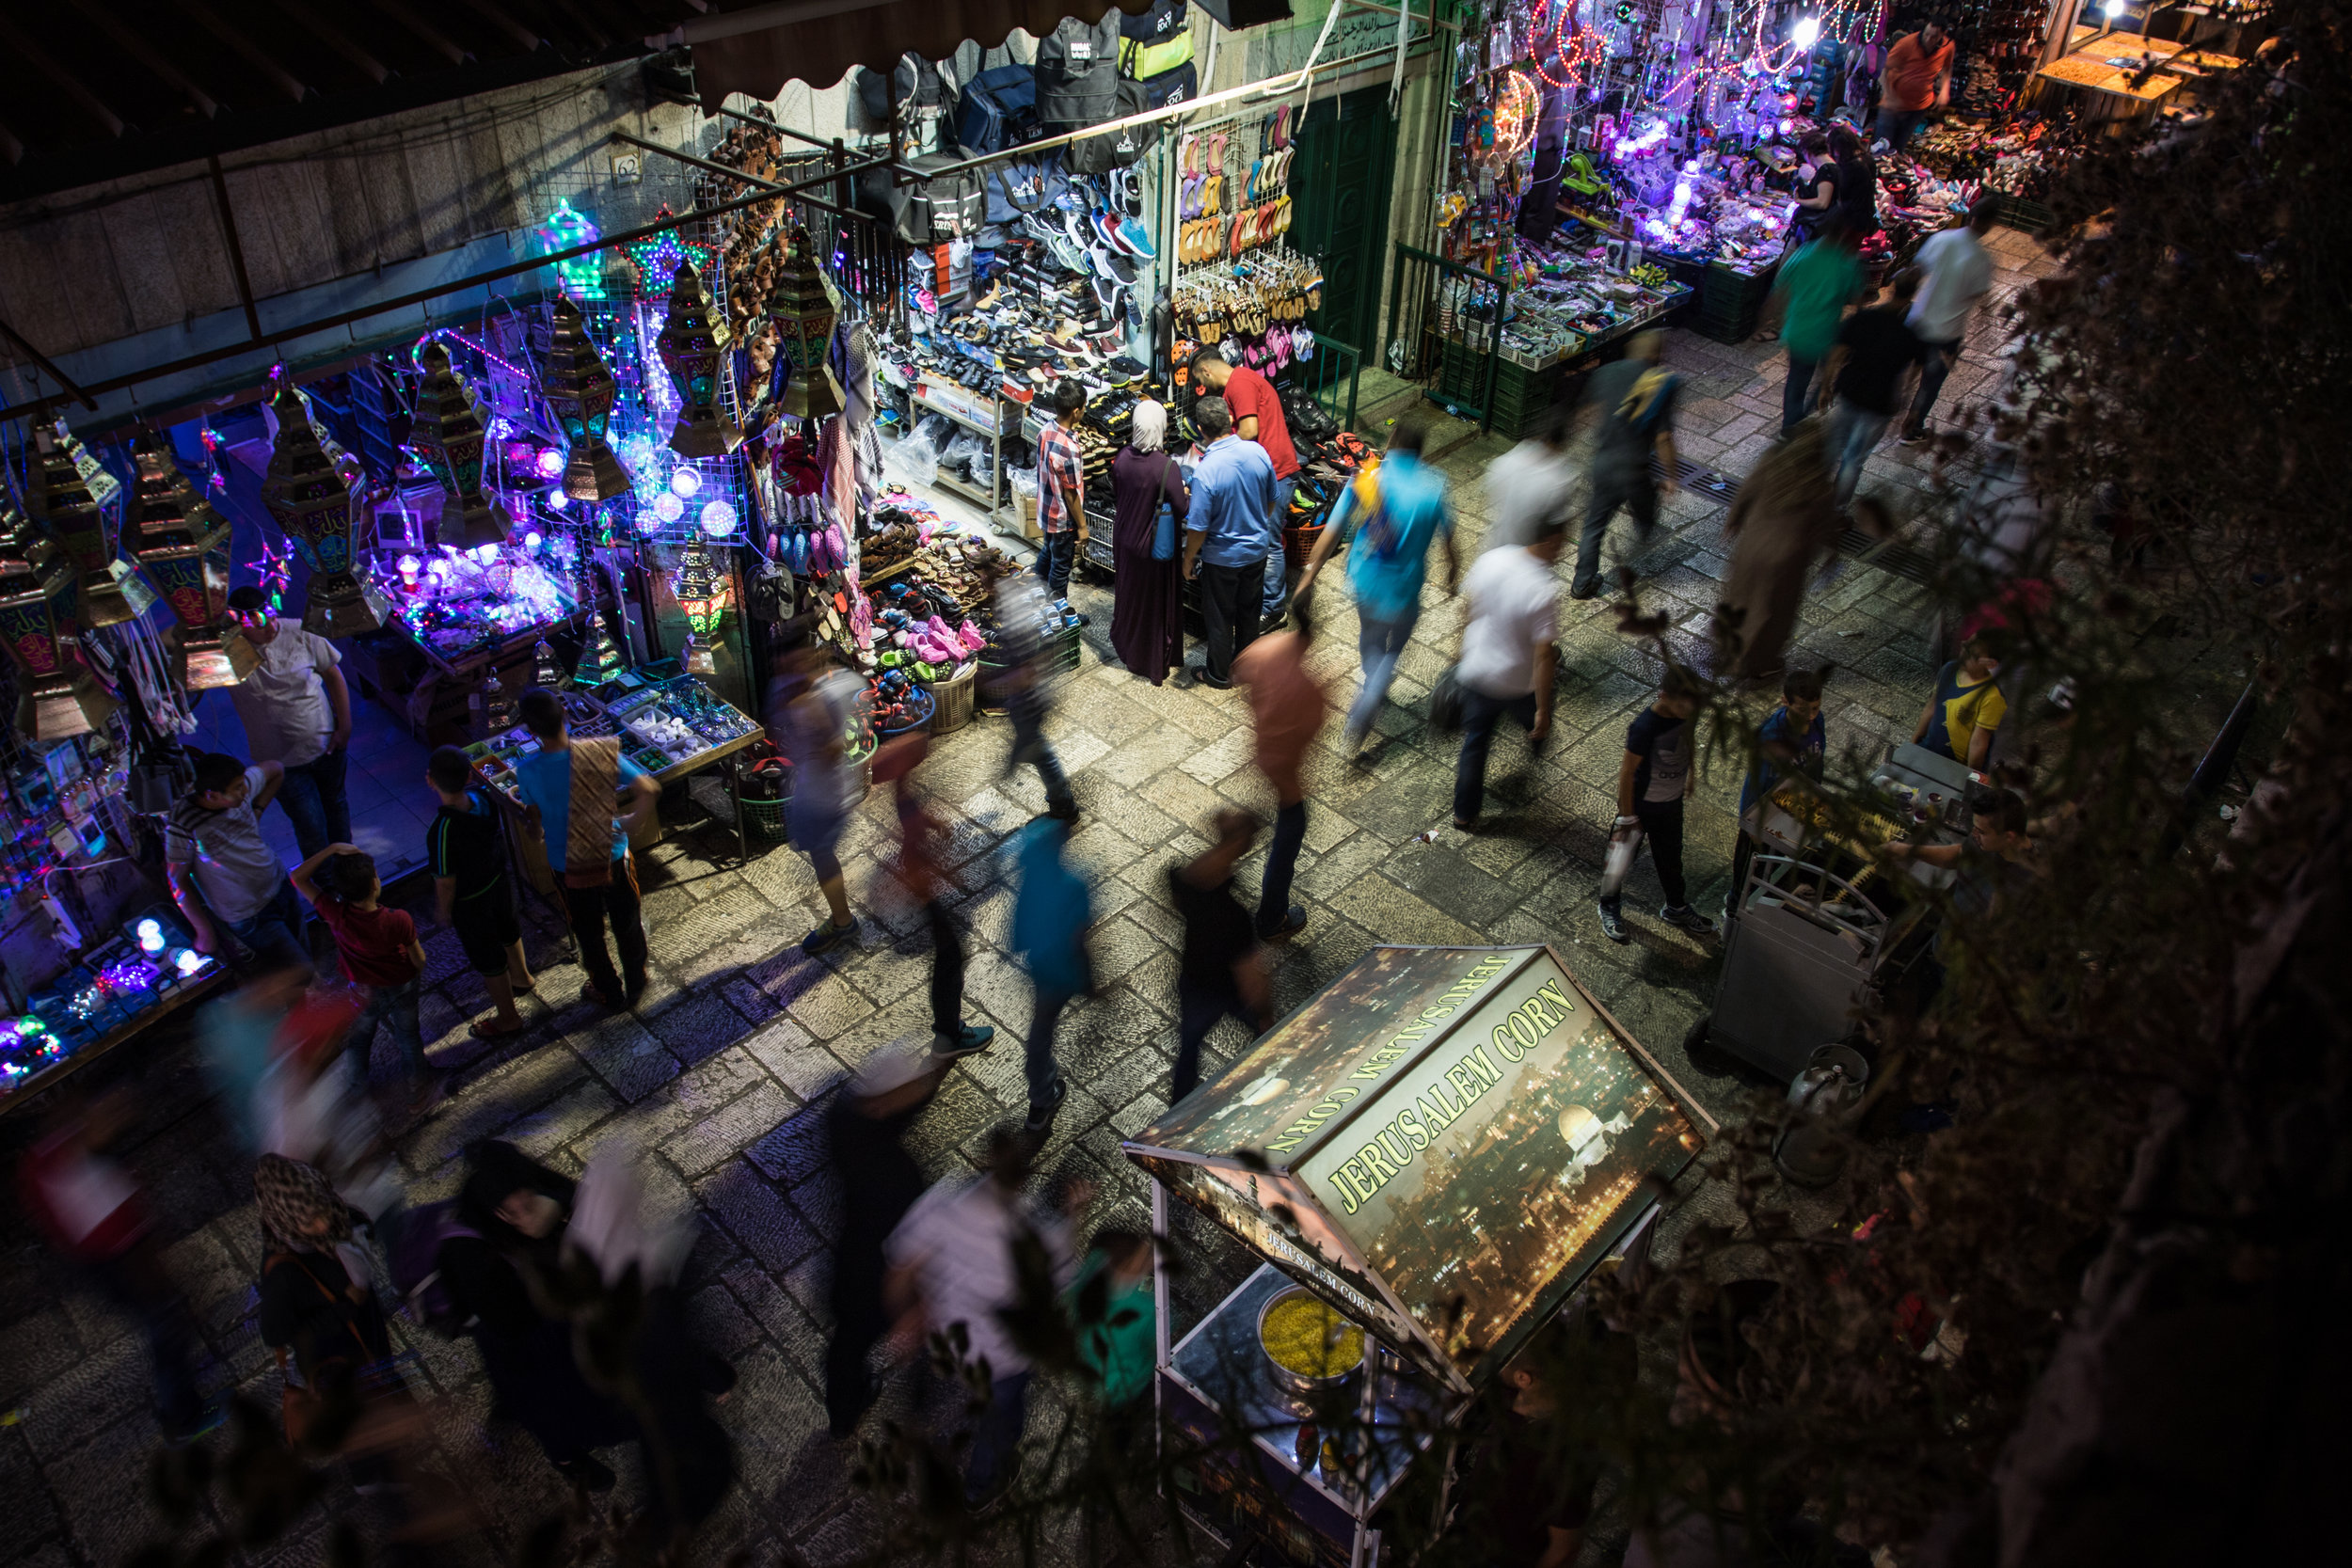 People walk through the streets of the Muslim quarter of the Old City of Jerusalem during the eighth night of Ramadan, June 14, 2016. After Muslim families and friends take Iftar (the meal which breaks the fast) after sundown, many make their way to the Old City to buy fresh food from merchants, meet up with other friends and family and enjoy the festive lights hung to celebrate the holiday. With each passing day of Ramadan, the celebrations become more and more intense, culminating with Eid al-Fitr, the final day of the holy month during which no Muslim is allowed to fast and great banquets are held all across the Muslim world.